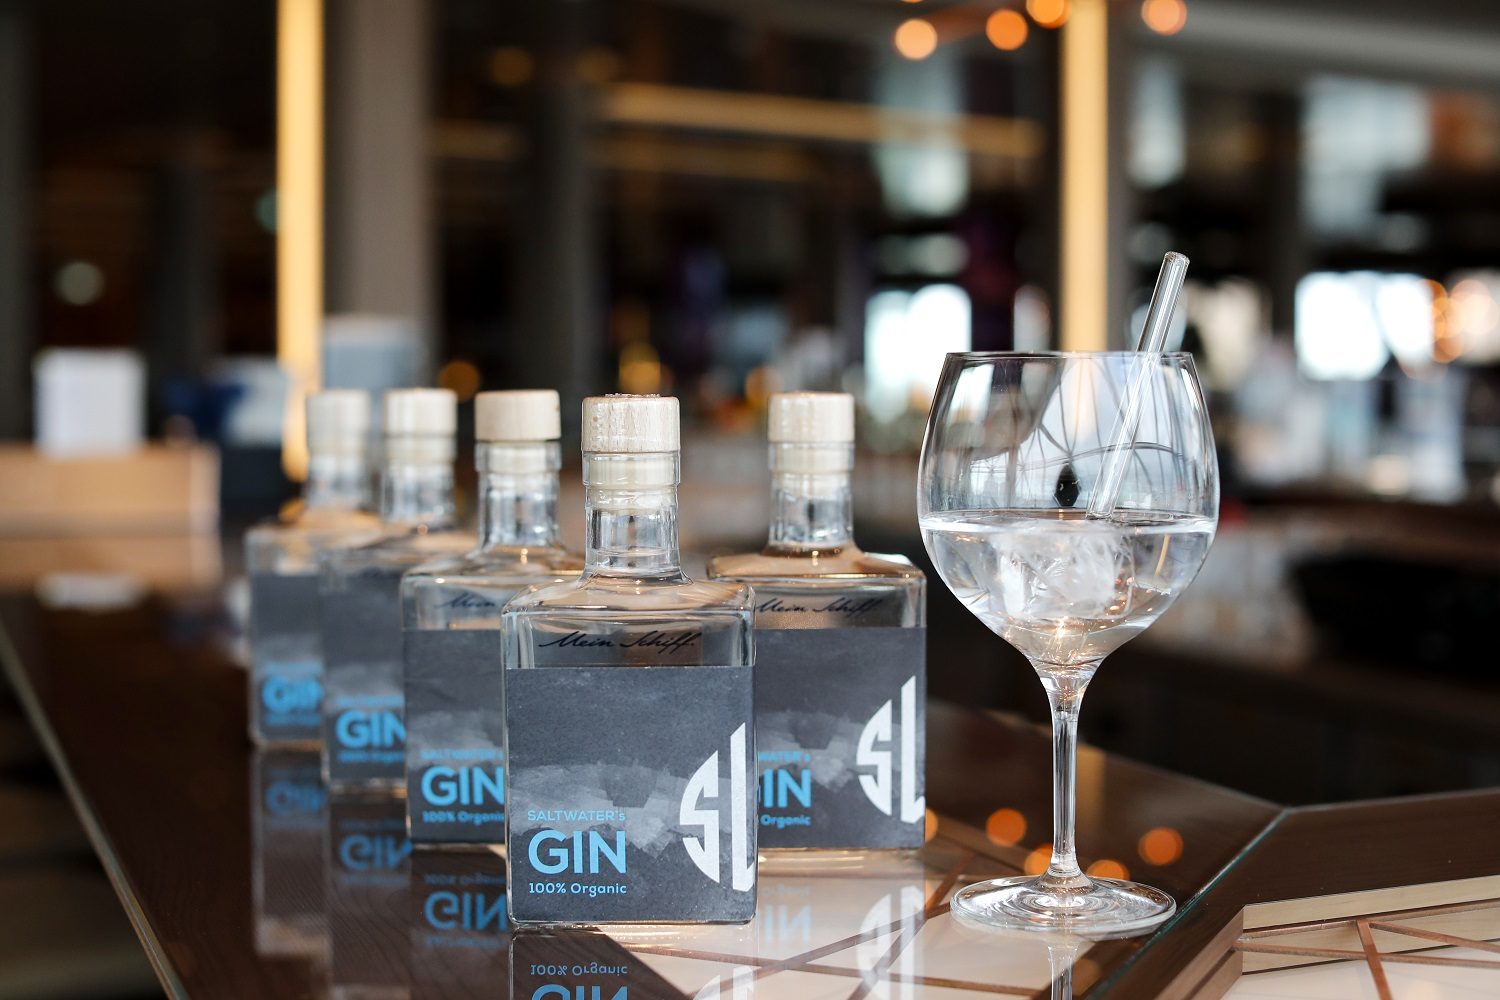 Die Editionsflaschen des Mein Schiff Gins (Photo by Franziska Krug/Getty Images for TUI Cruises)